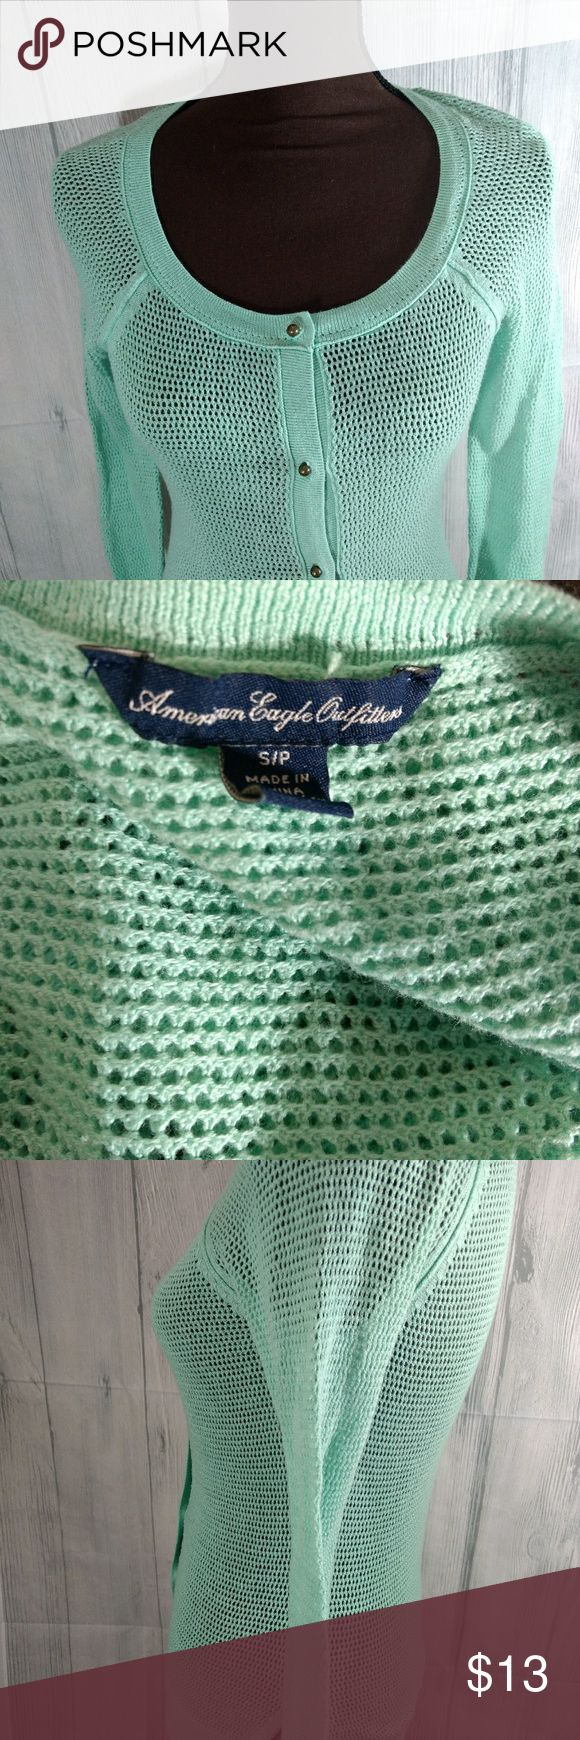 American Eagle size medium knit sweater Super cute from American Eagle Outfitters! Beautiful Robin's egg blue color Button front Knit sweater Size is medium American Eagle Outfitters Sweaters Cardigans #americaneagleoutfitters